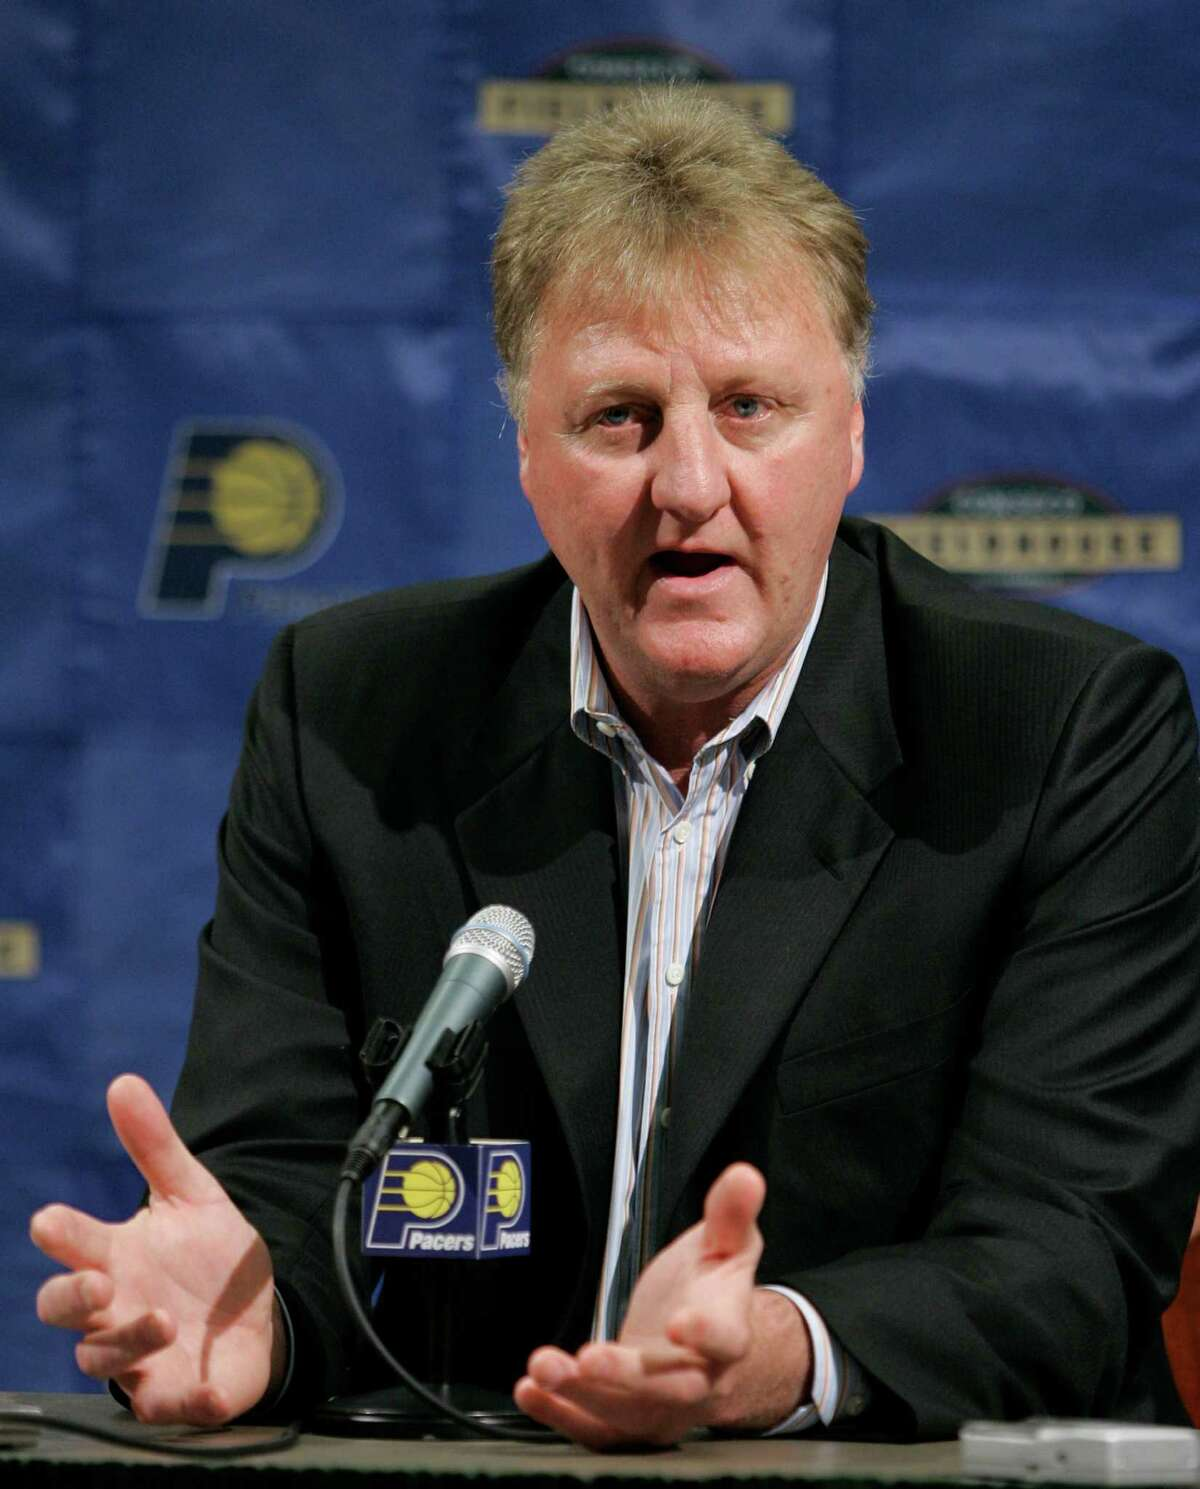 Indiana Pacers president Larry Bird announces that coach Rick Carlisle will not return to coach the team during a news conference in Indianapolis, Wednesday, April 25, 2007. Carlisle coached the team for four season and compiled a 181-147 record. The Pacers missed the playoffs this season with a record of 35-47. (AP Photo/Michael Conroy)